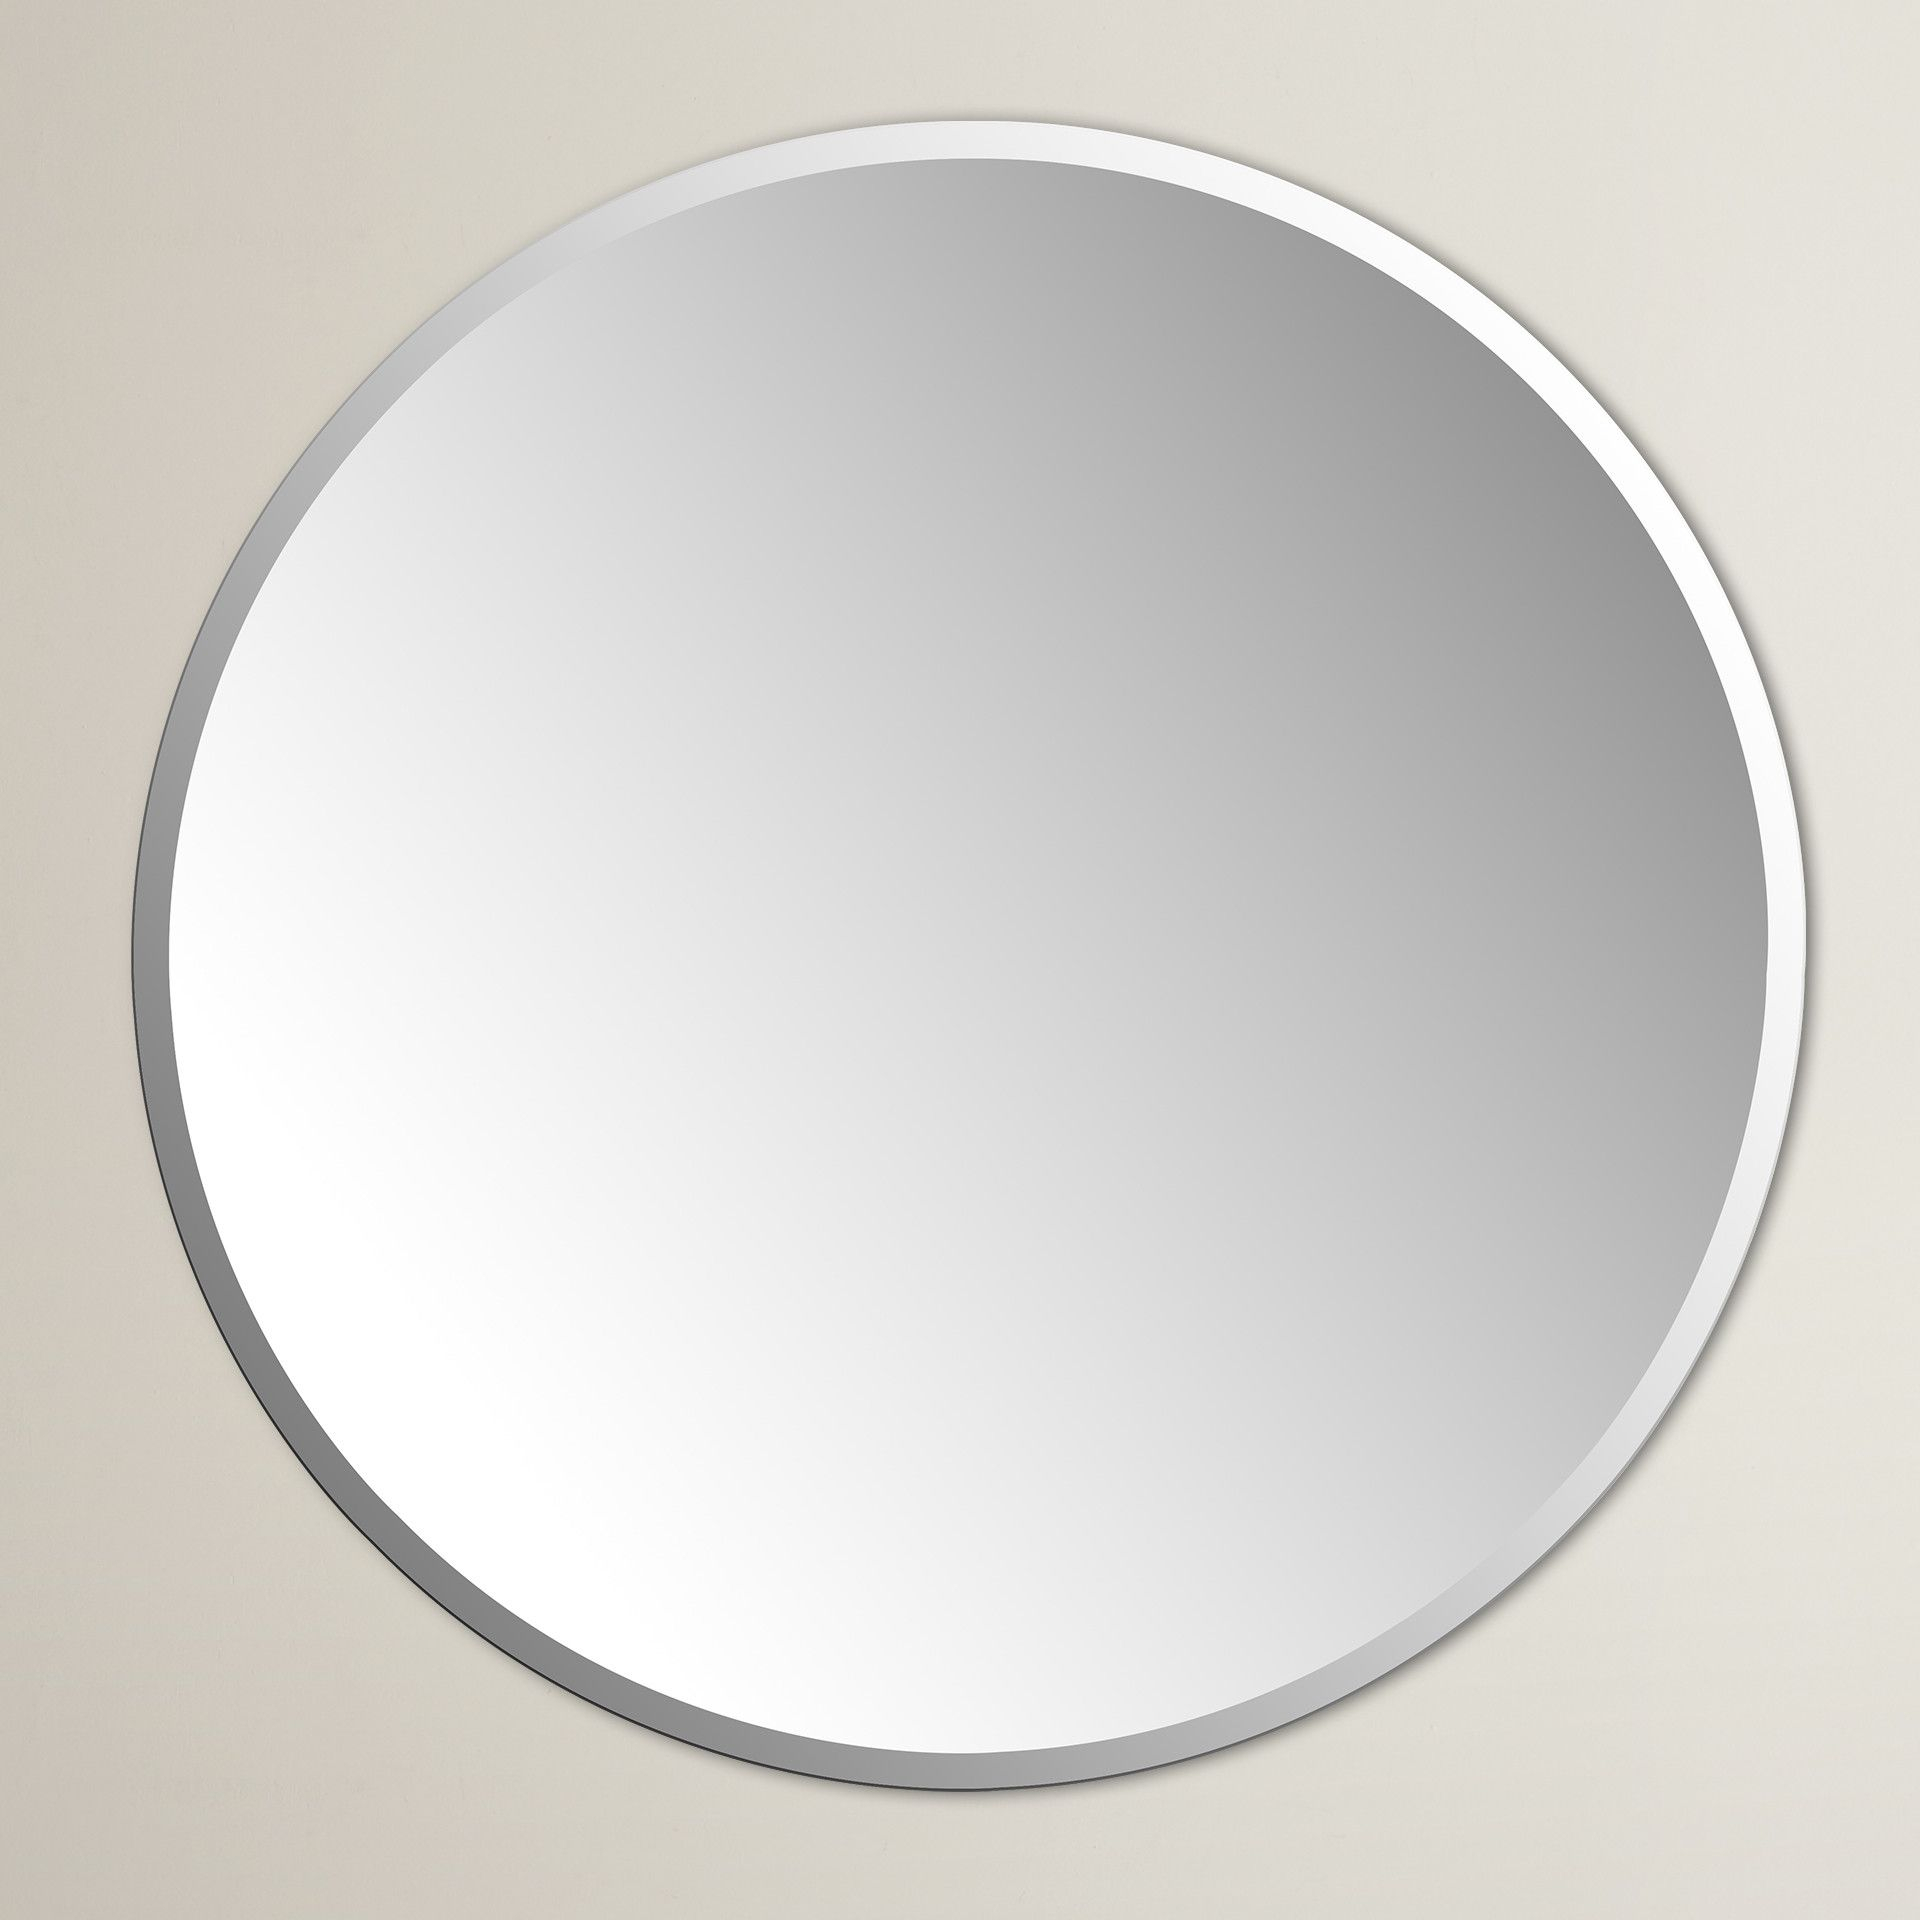 Kayden Accent Mirror | Bathroom Idea | Mirror, Wall Mounted In Kayden Accent Mirrors (Gallery 11 of 30)